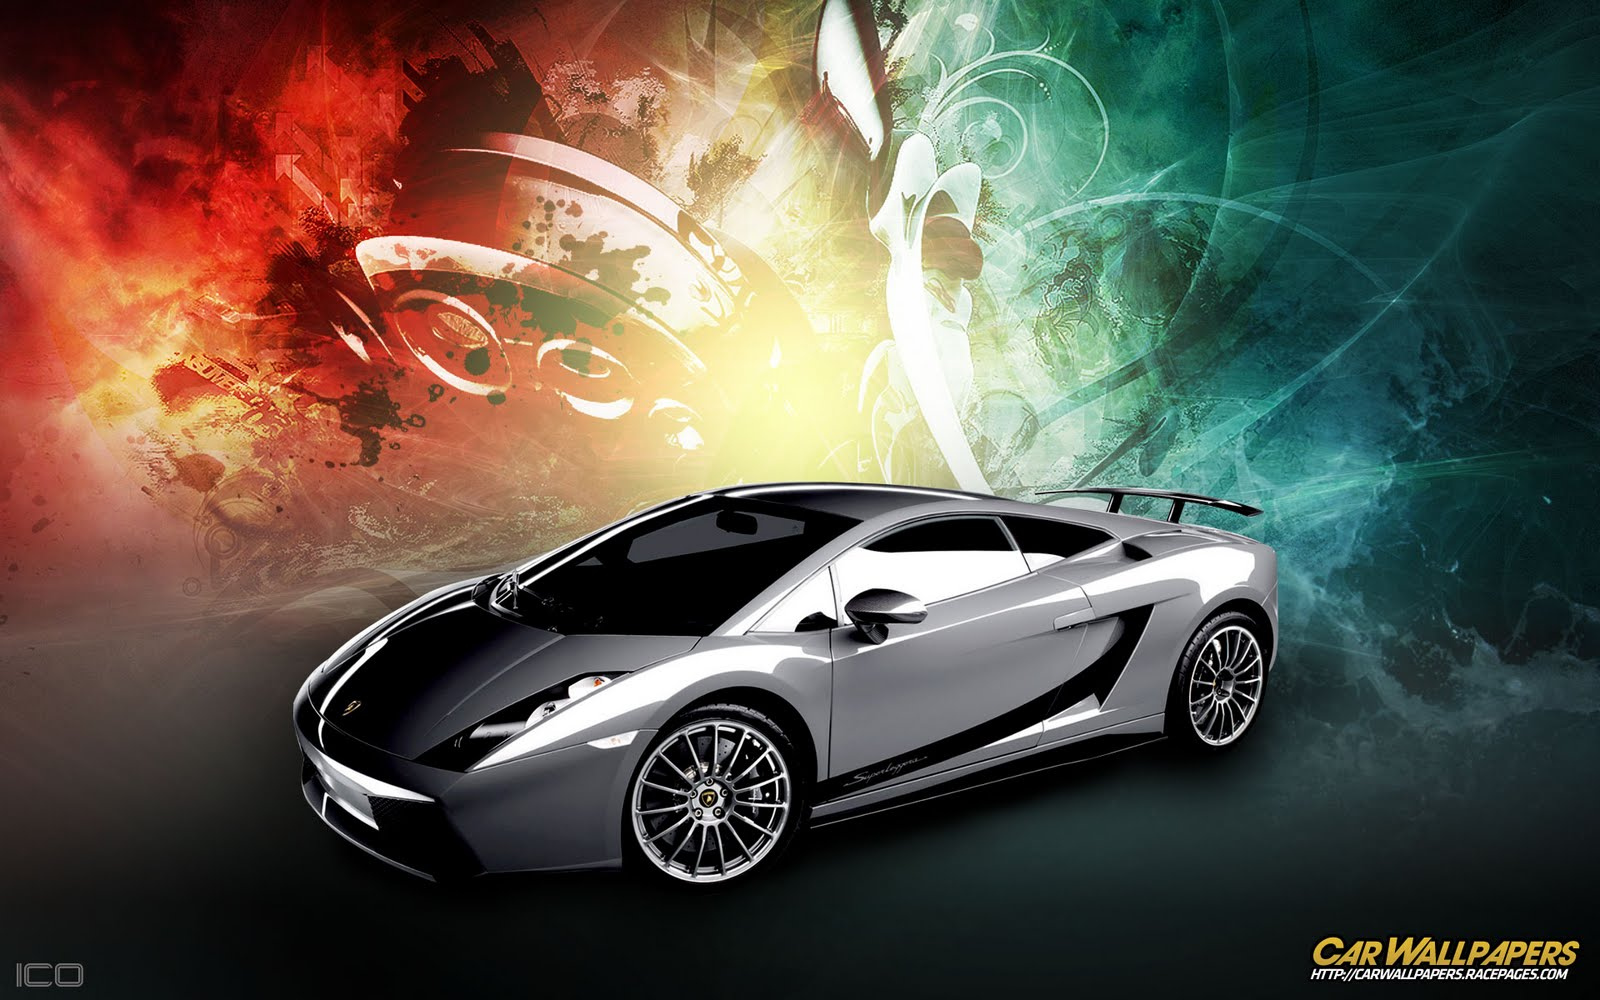 Hot Cars Lamborghini Gallardo Colorful Wallpaper Background